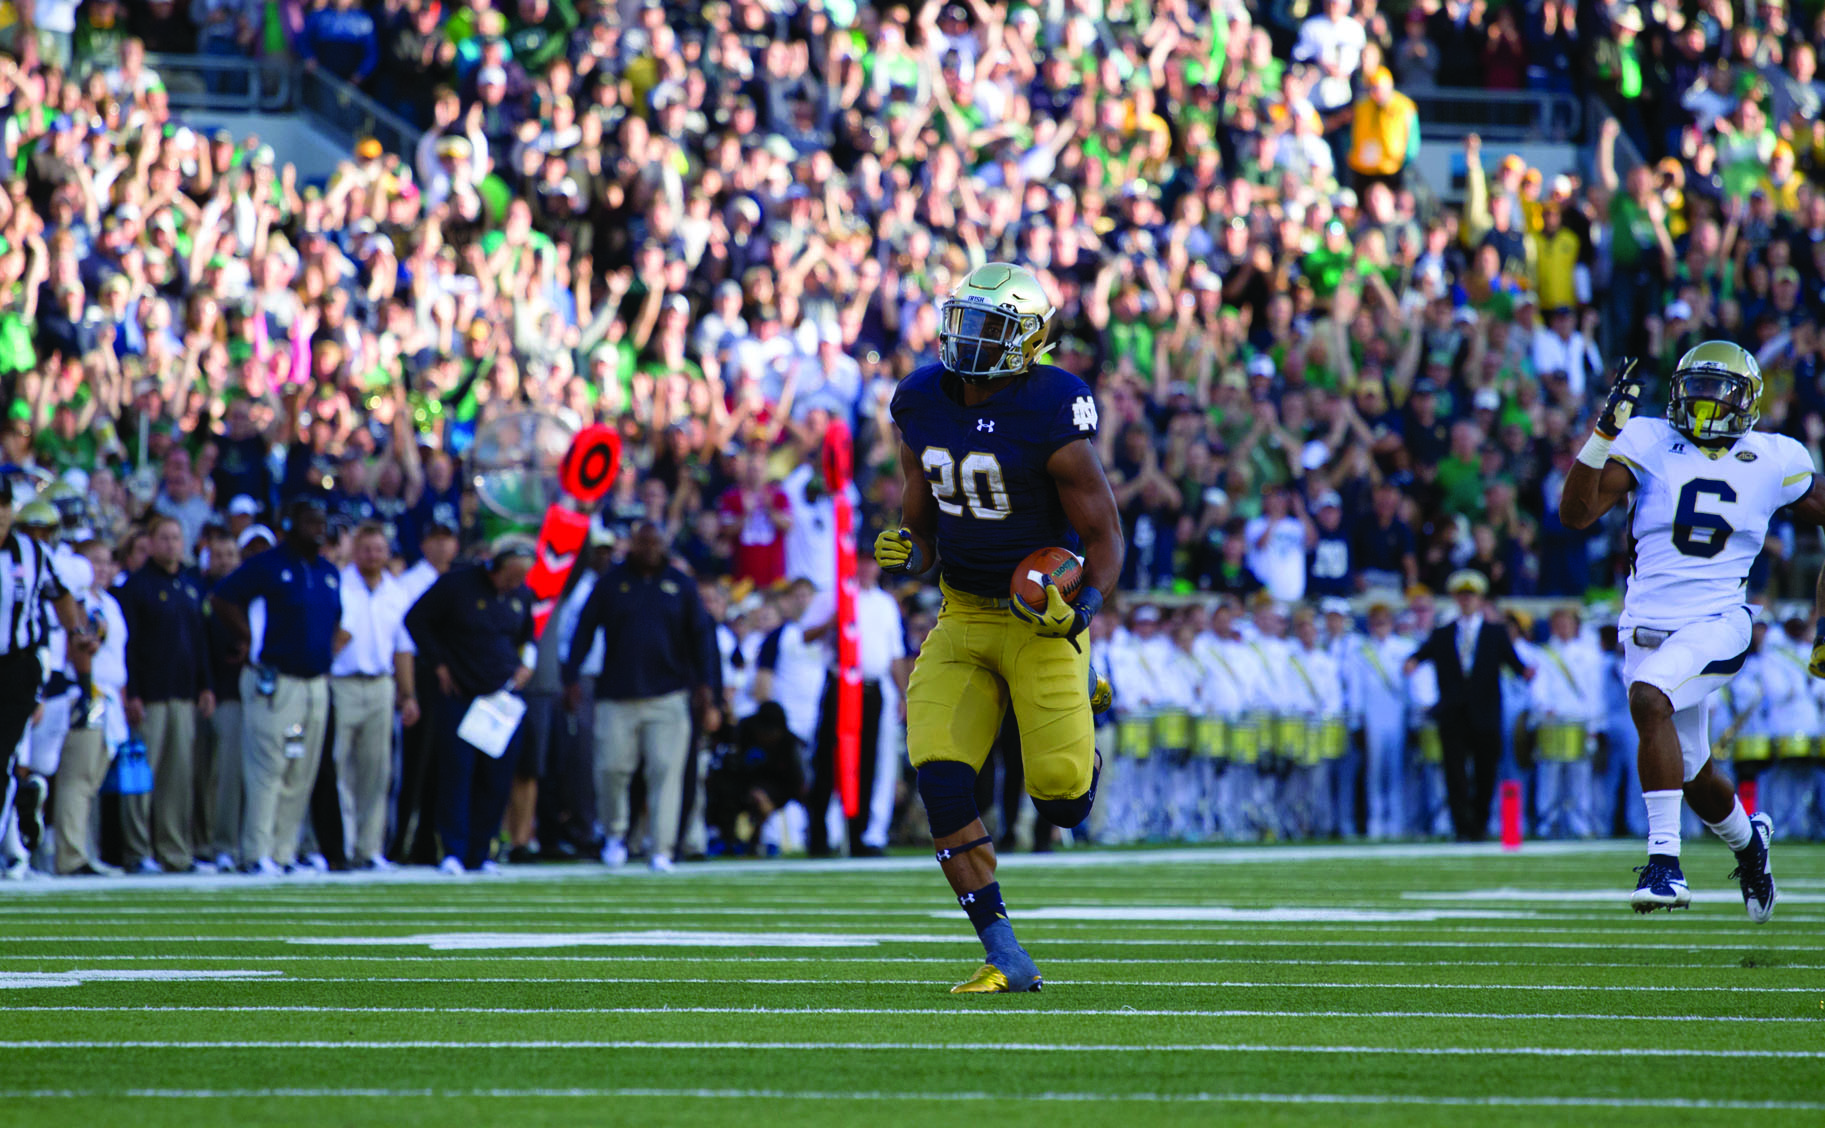 rish senior running back C.J. Prosise pulls away from Georgia Tech redshirt senior defensive back Chris Milton during his 91-yard touchdown run in the fourth quarter of Notre Dame's 30-22 win Saturday.